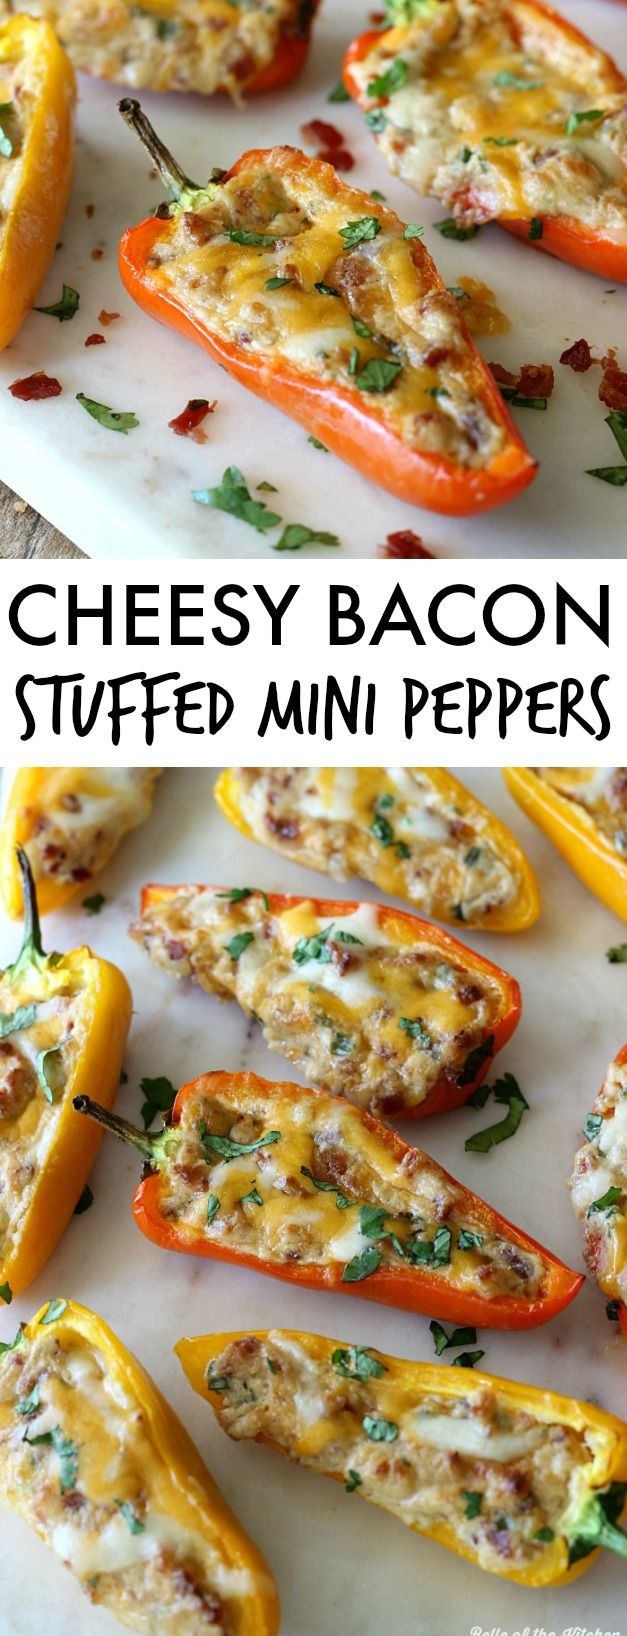 Cheesy Bacon Stuffed Mini Peppers Recipe Stuffed Peppers Appetizer Recipes Keto Meal Prep